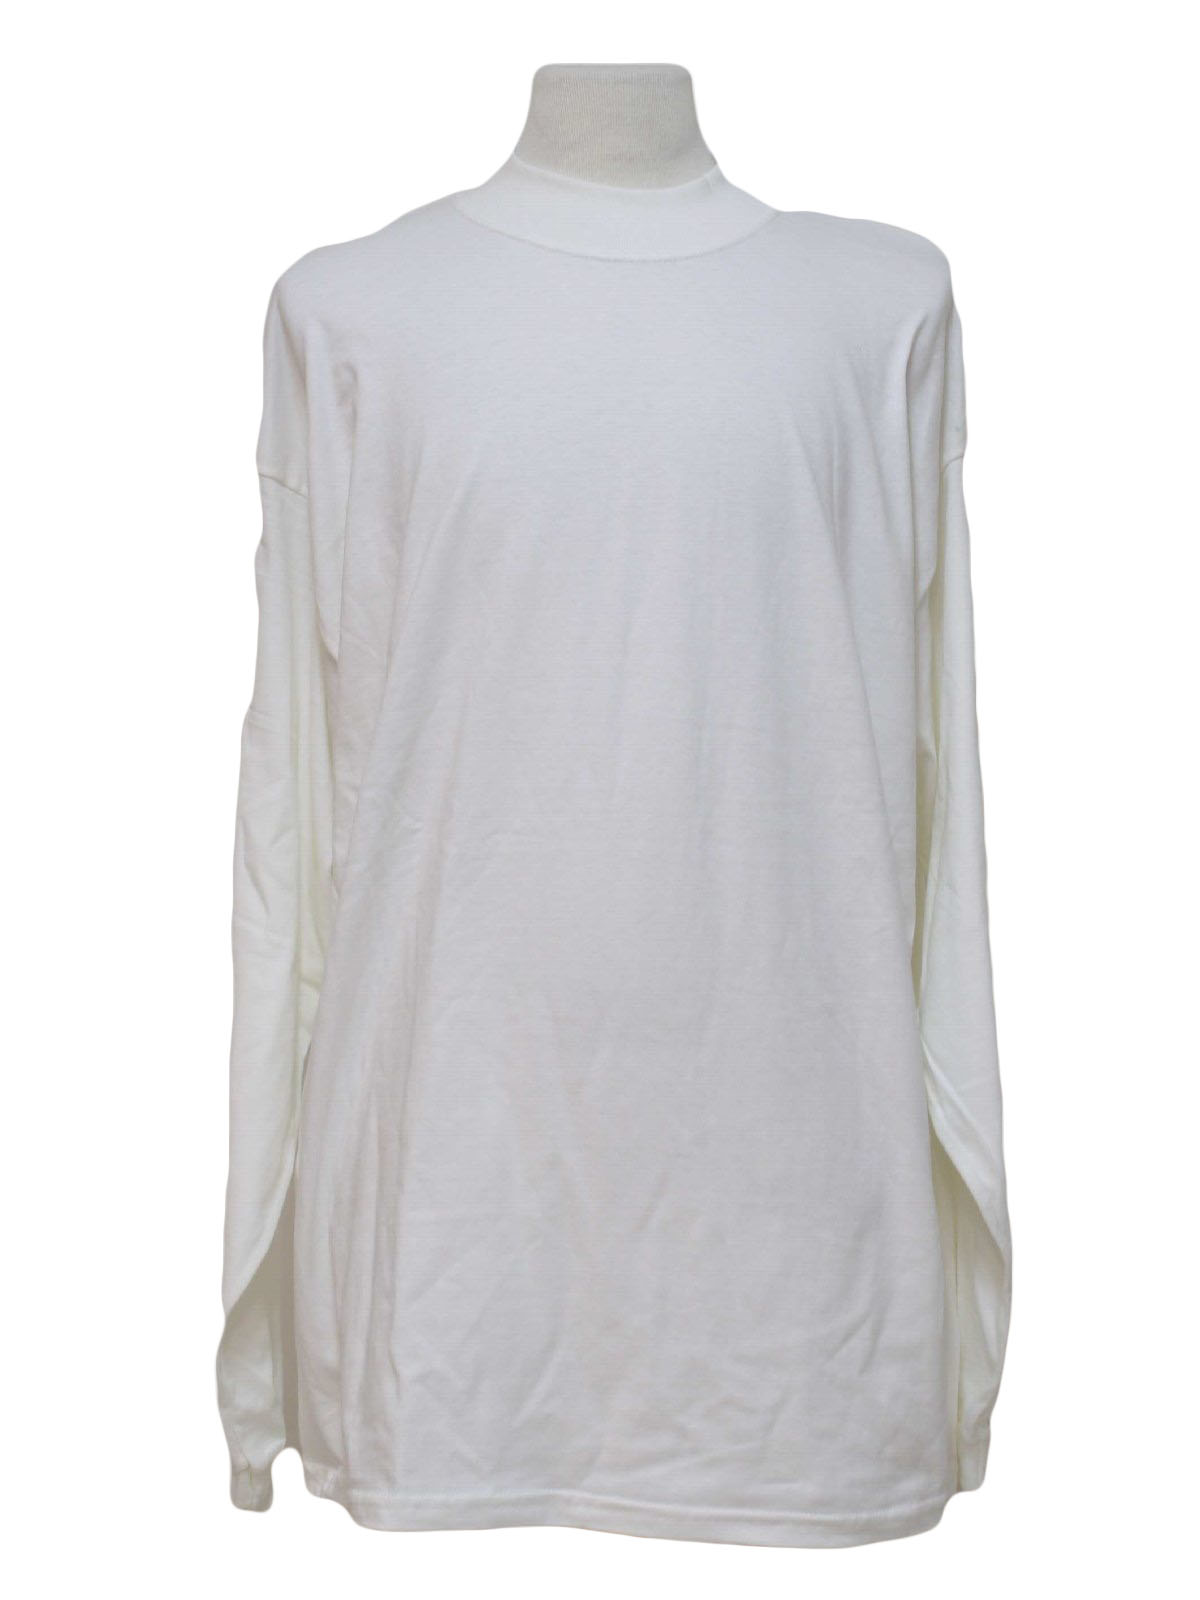 Accessories - White Mock Turtleneck Shirt to wear with your Ugly ...